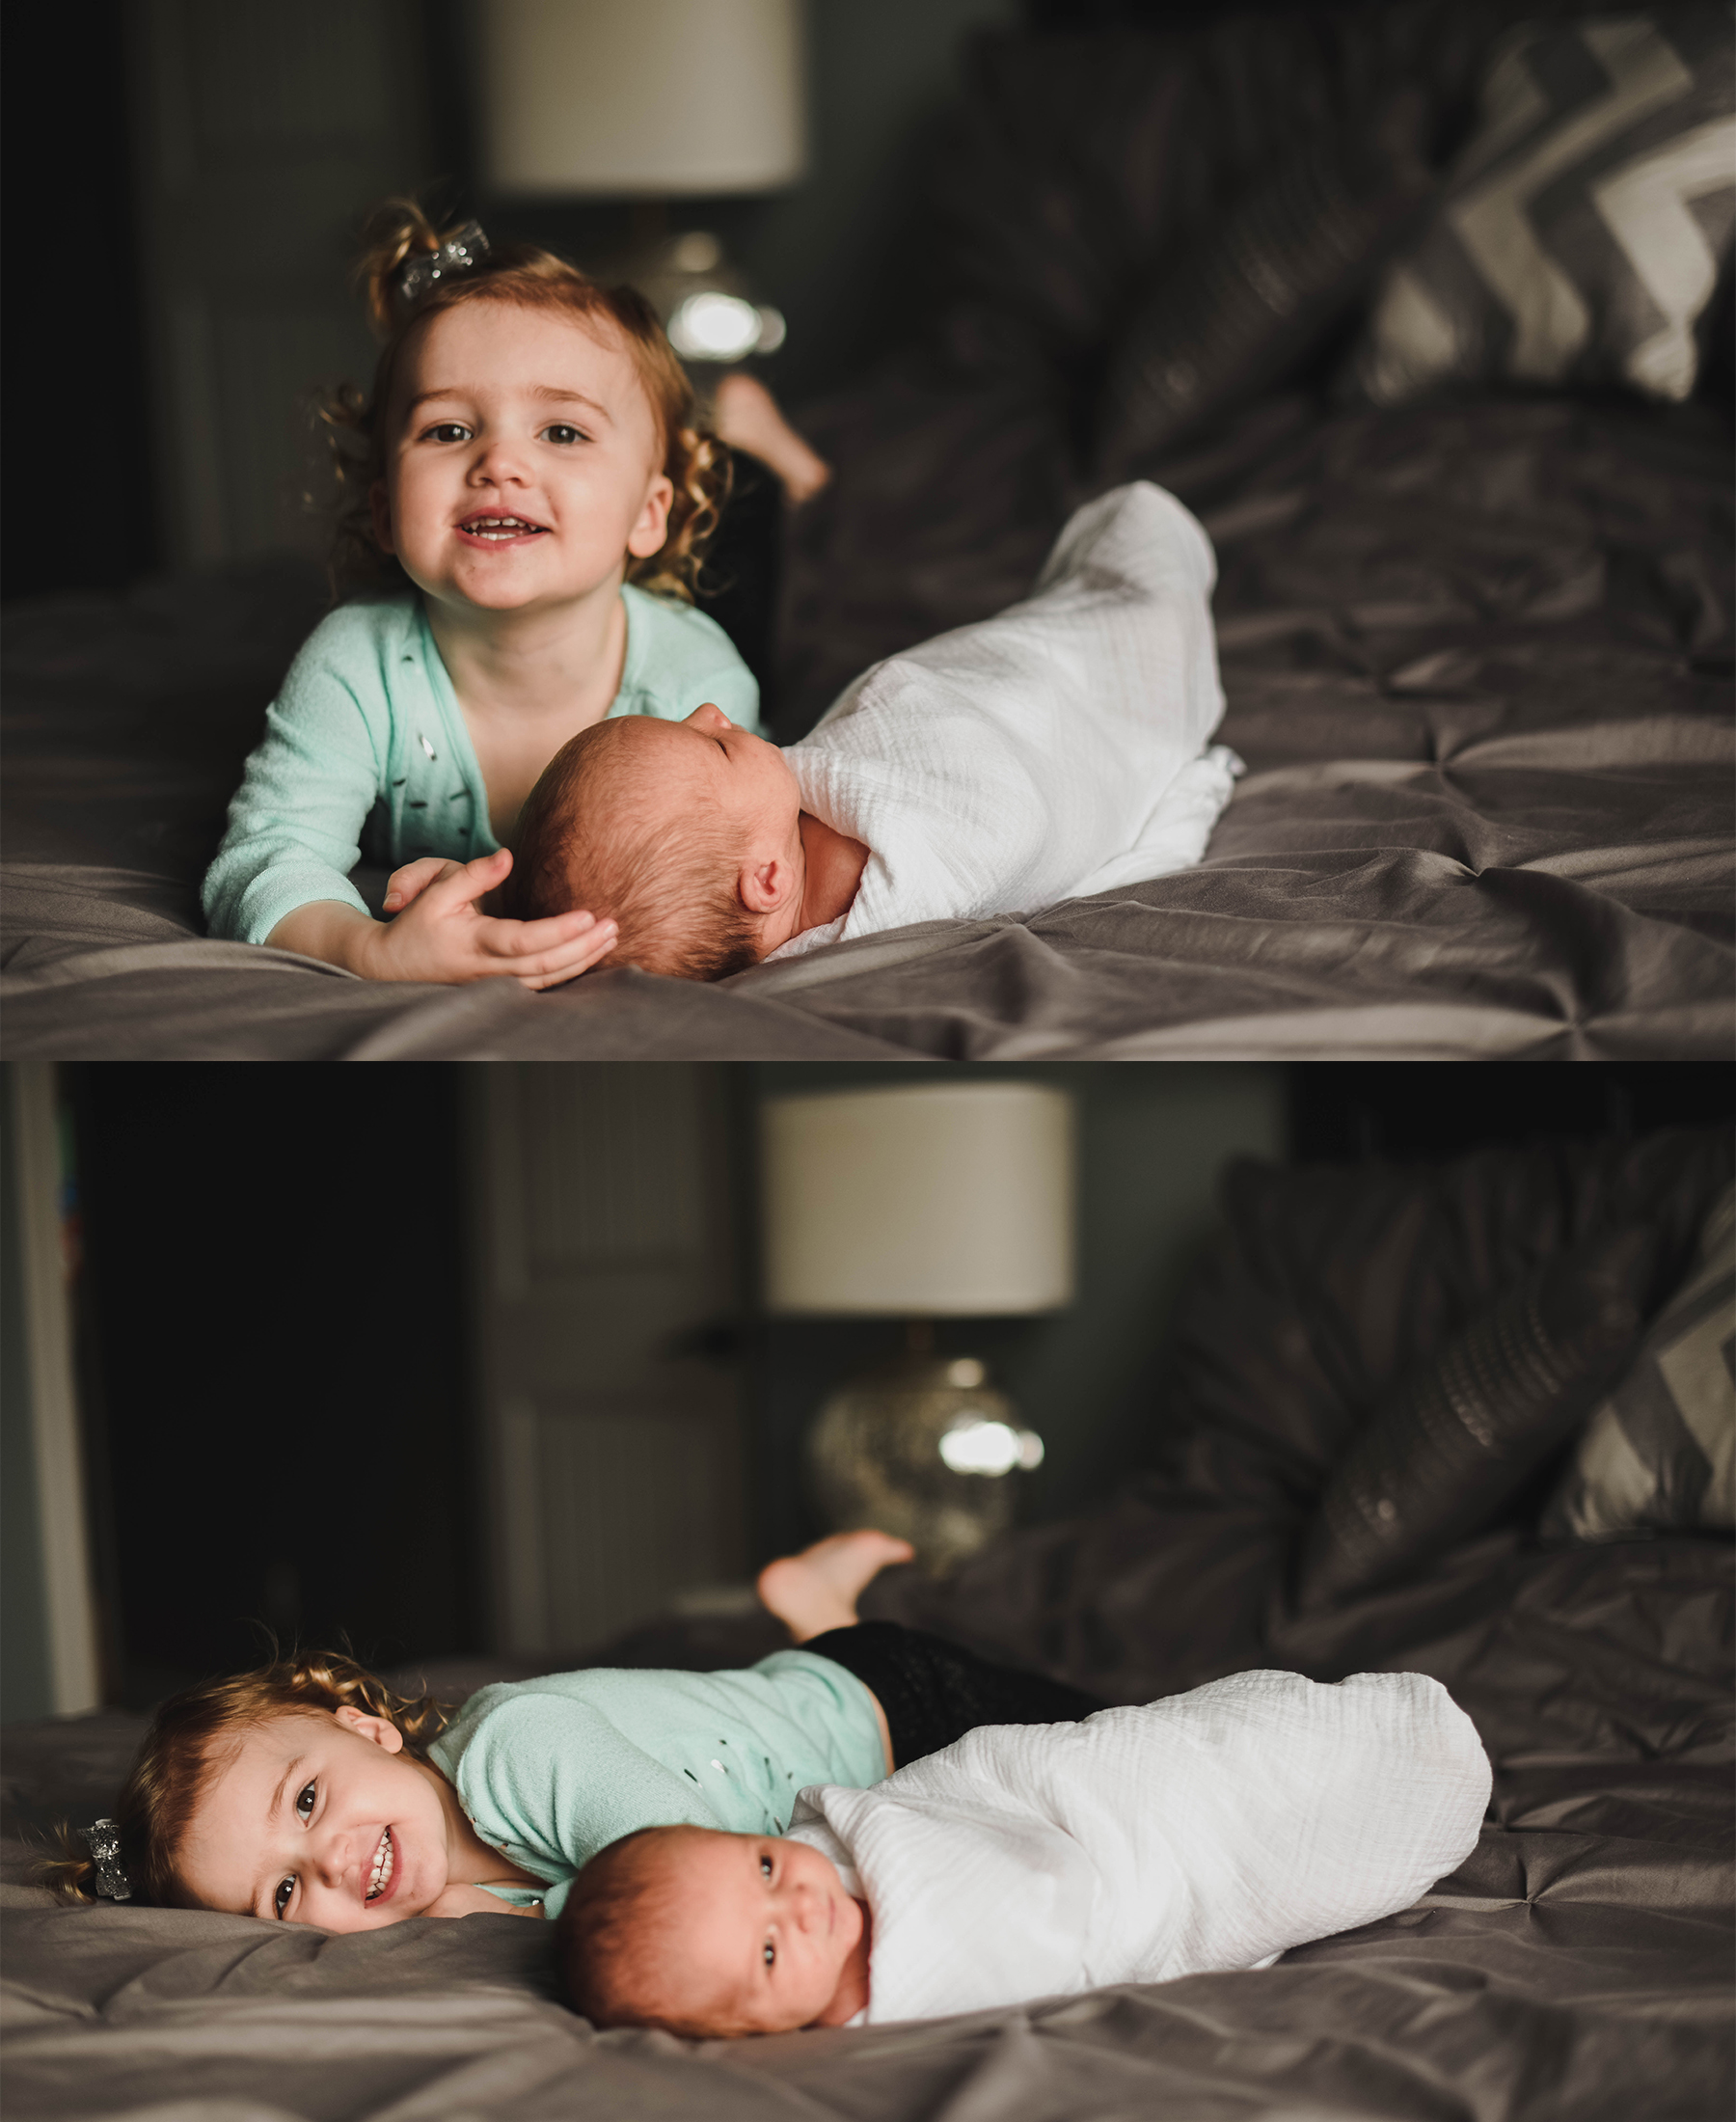 If you have ever taken photos of a 2 year old you probably know as well as I do that it is next to impossible sometimes!! Harper kept me on my feet on Saturday but I still love these shots of her with her brother